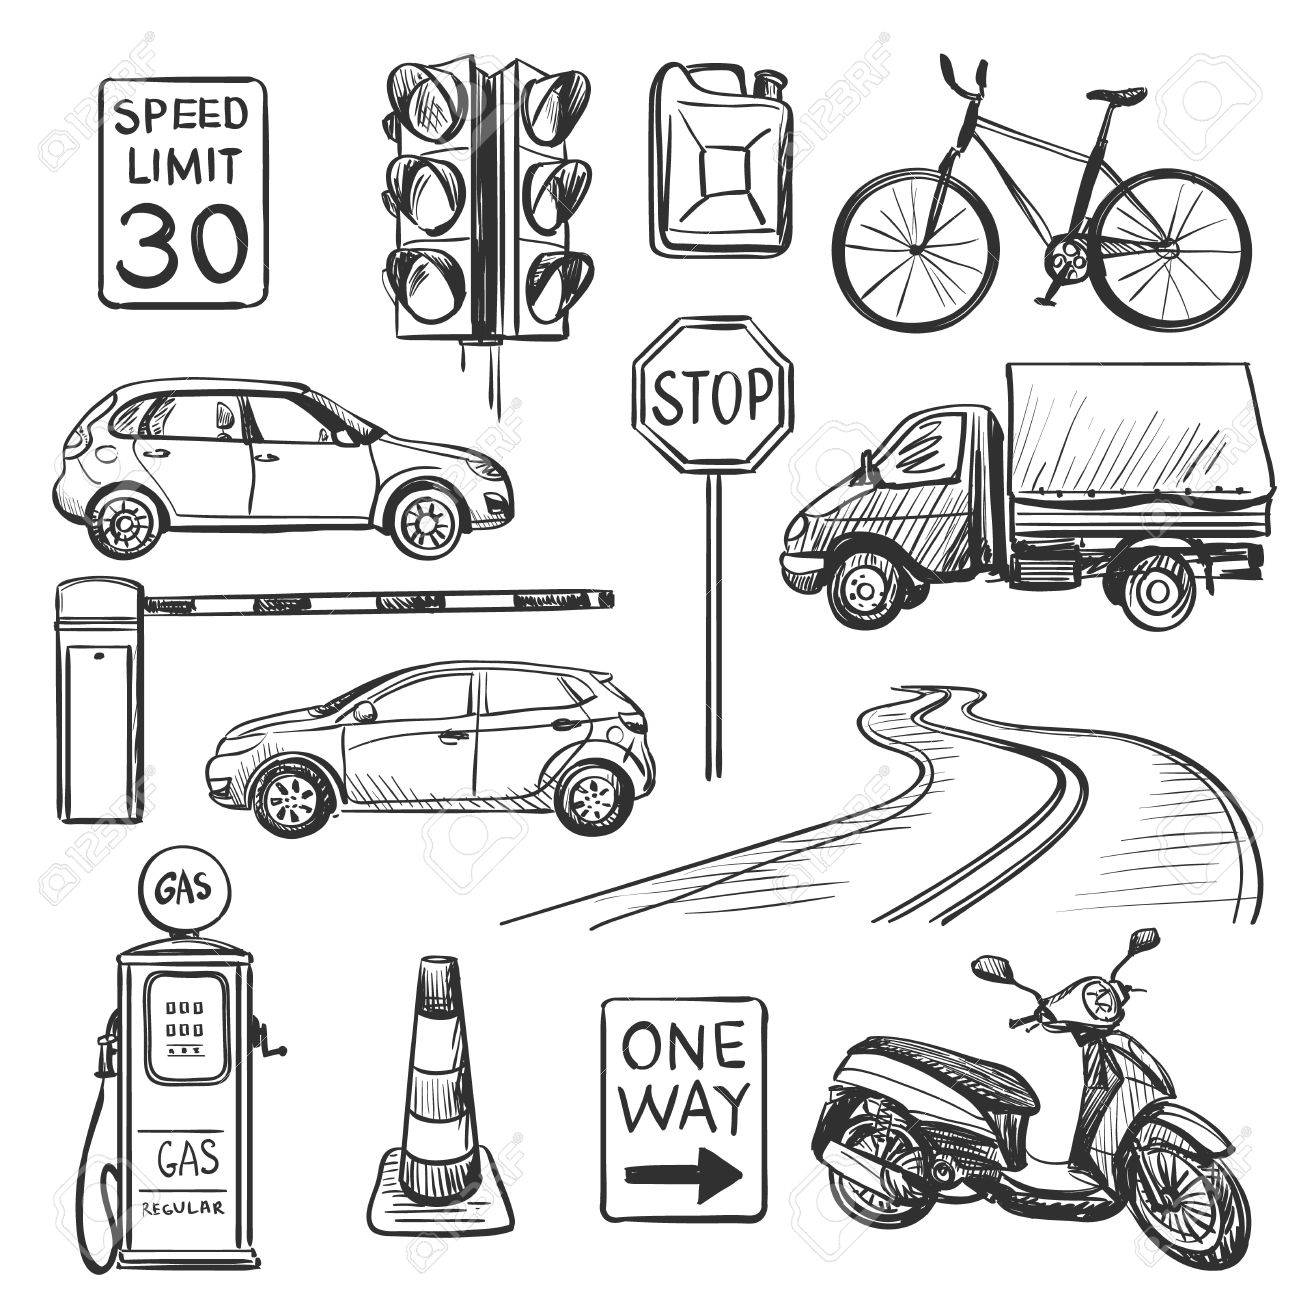 Traffic Drawing at GetDrawings.com | Free for personal use Traffic ...